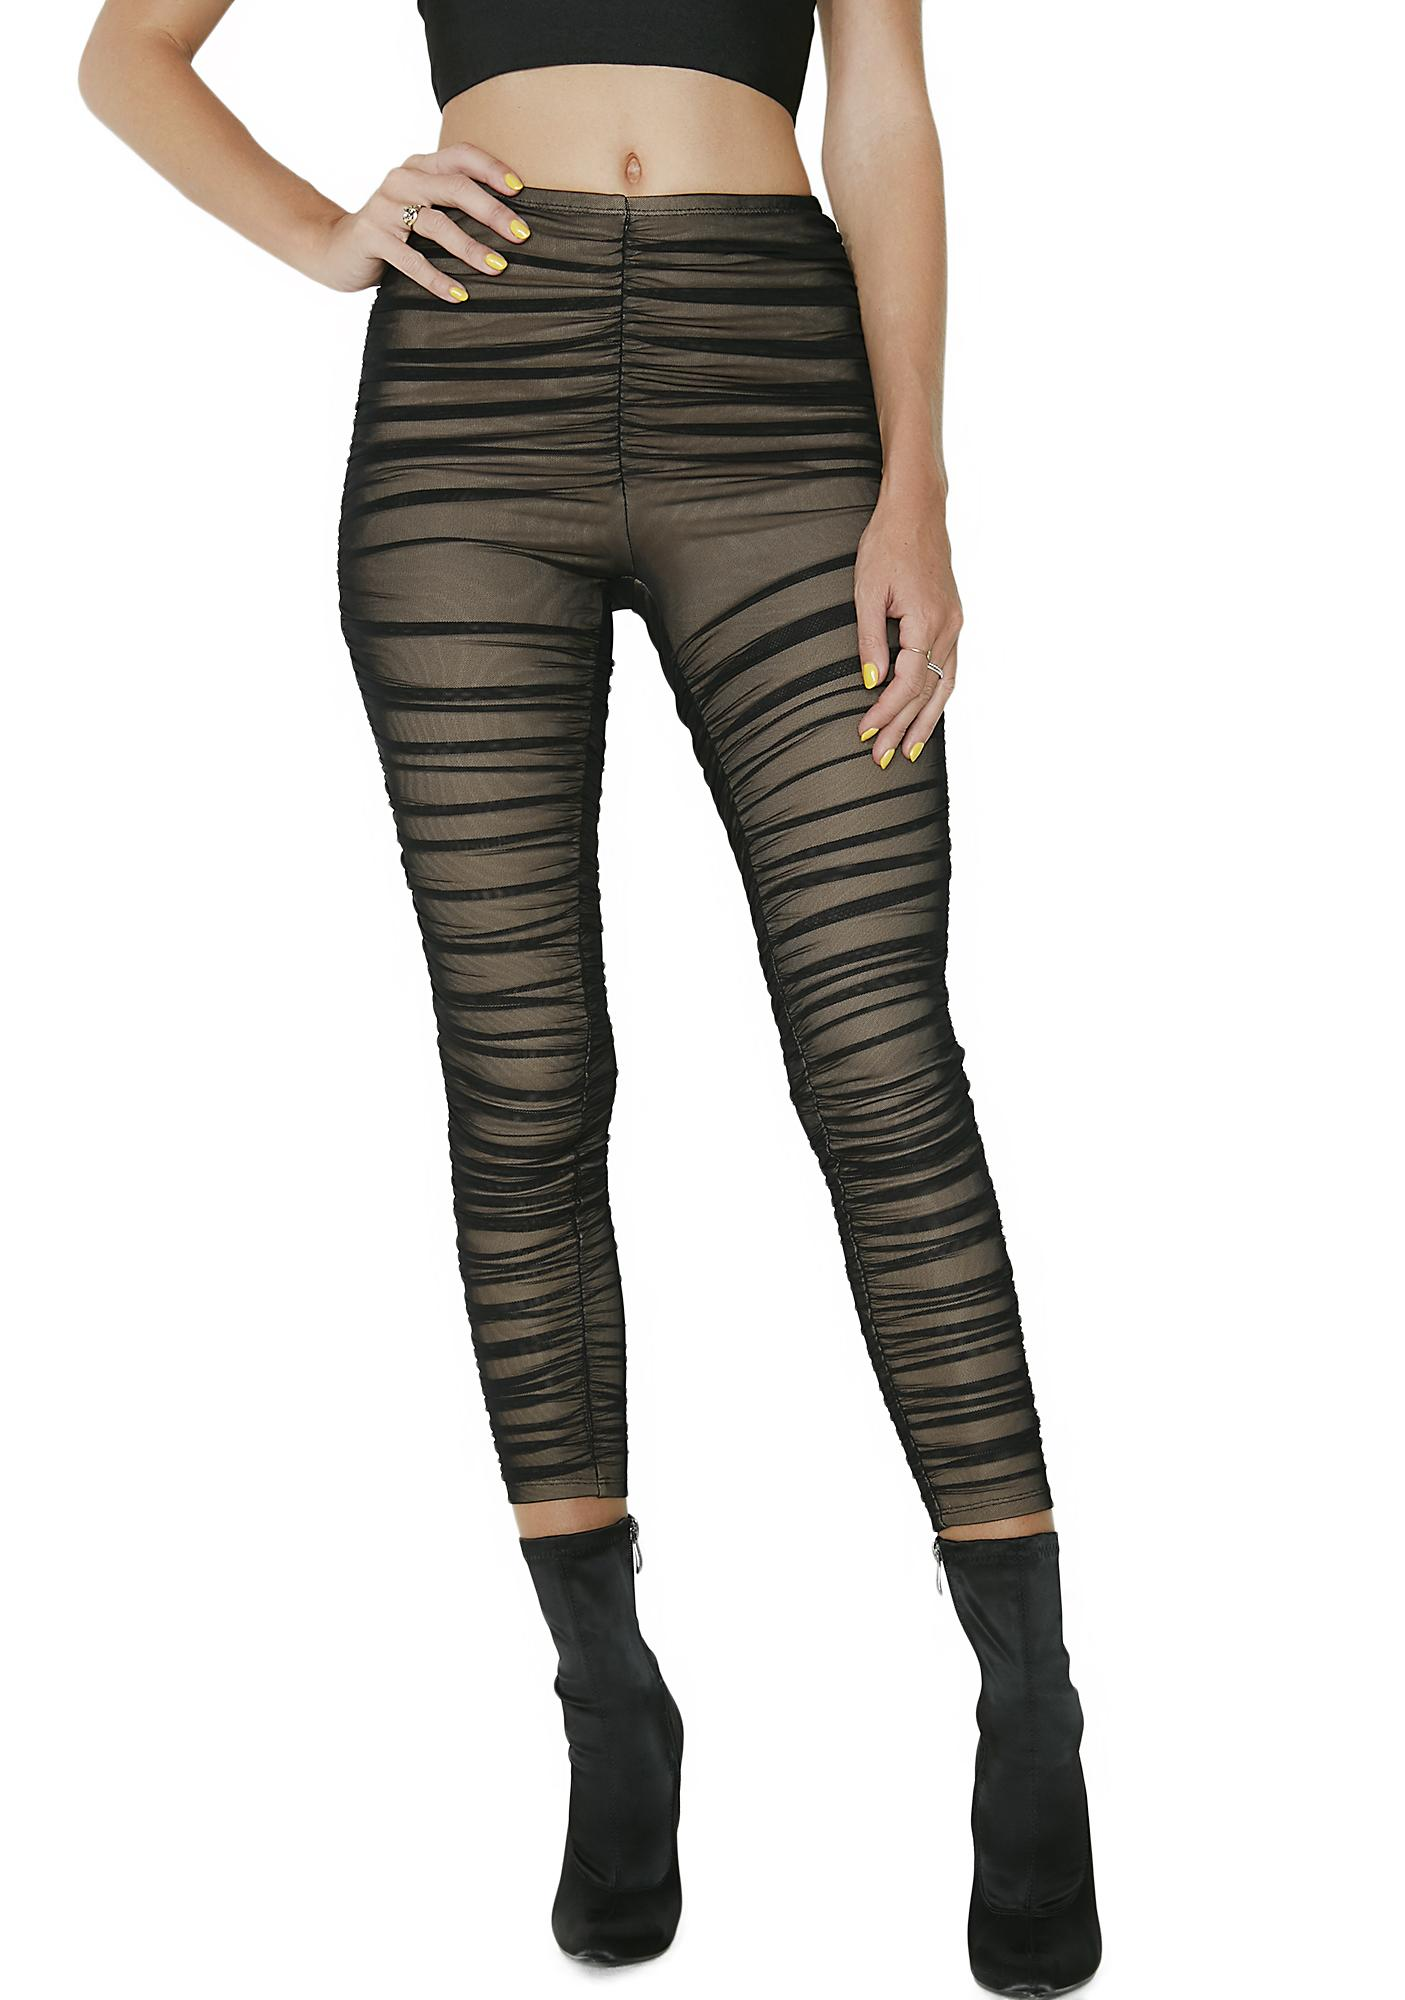 Lady Tess Leggings